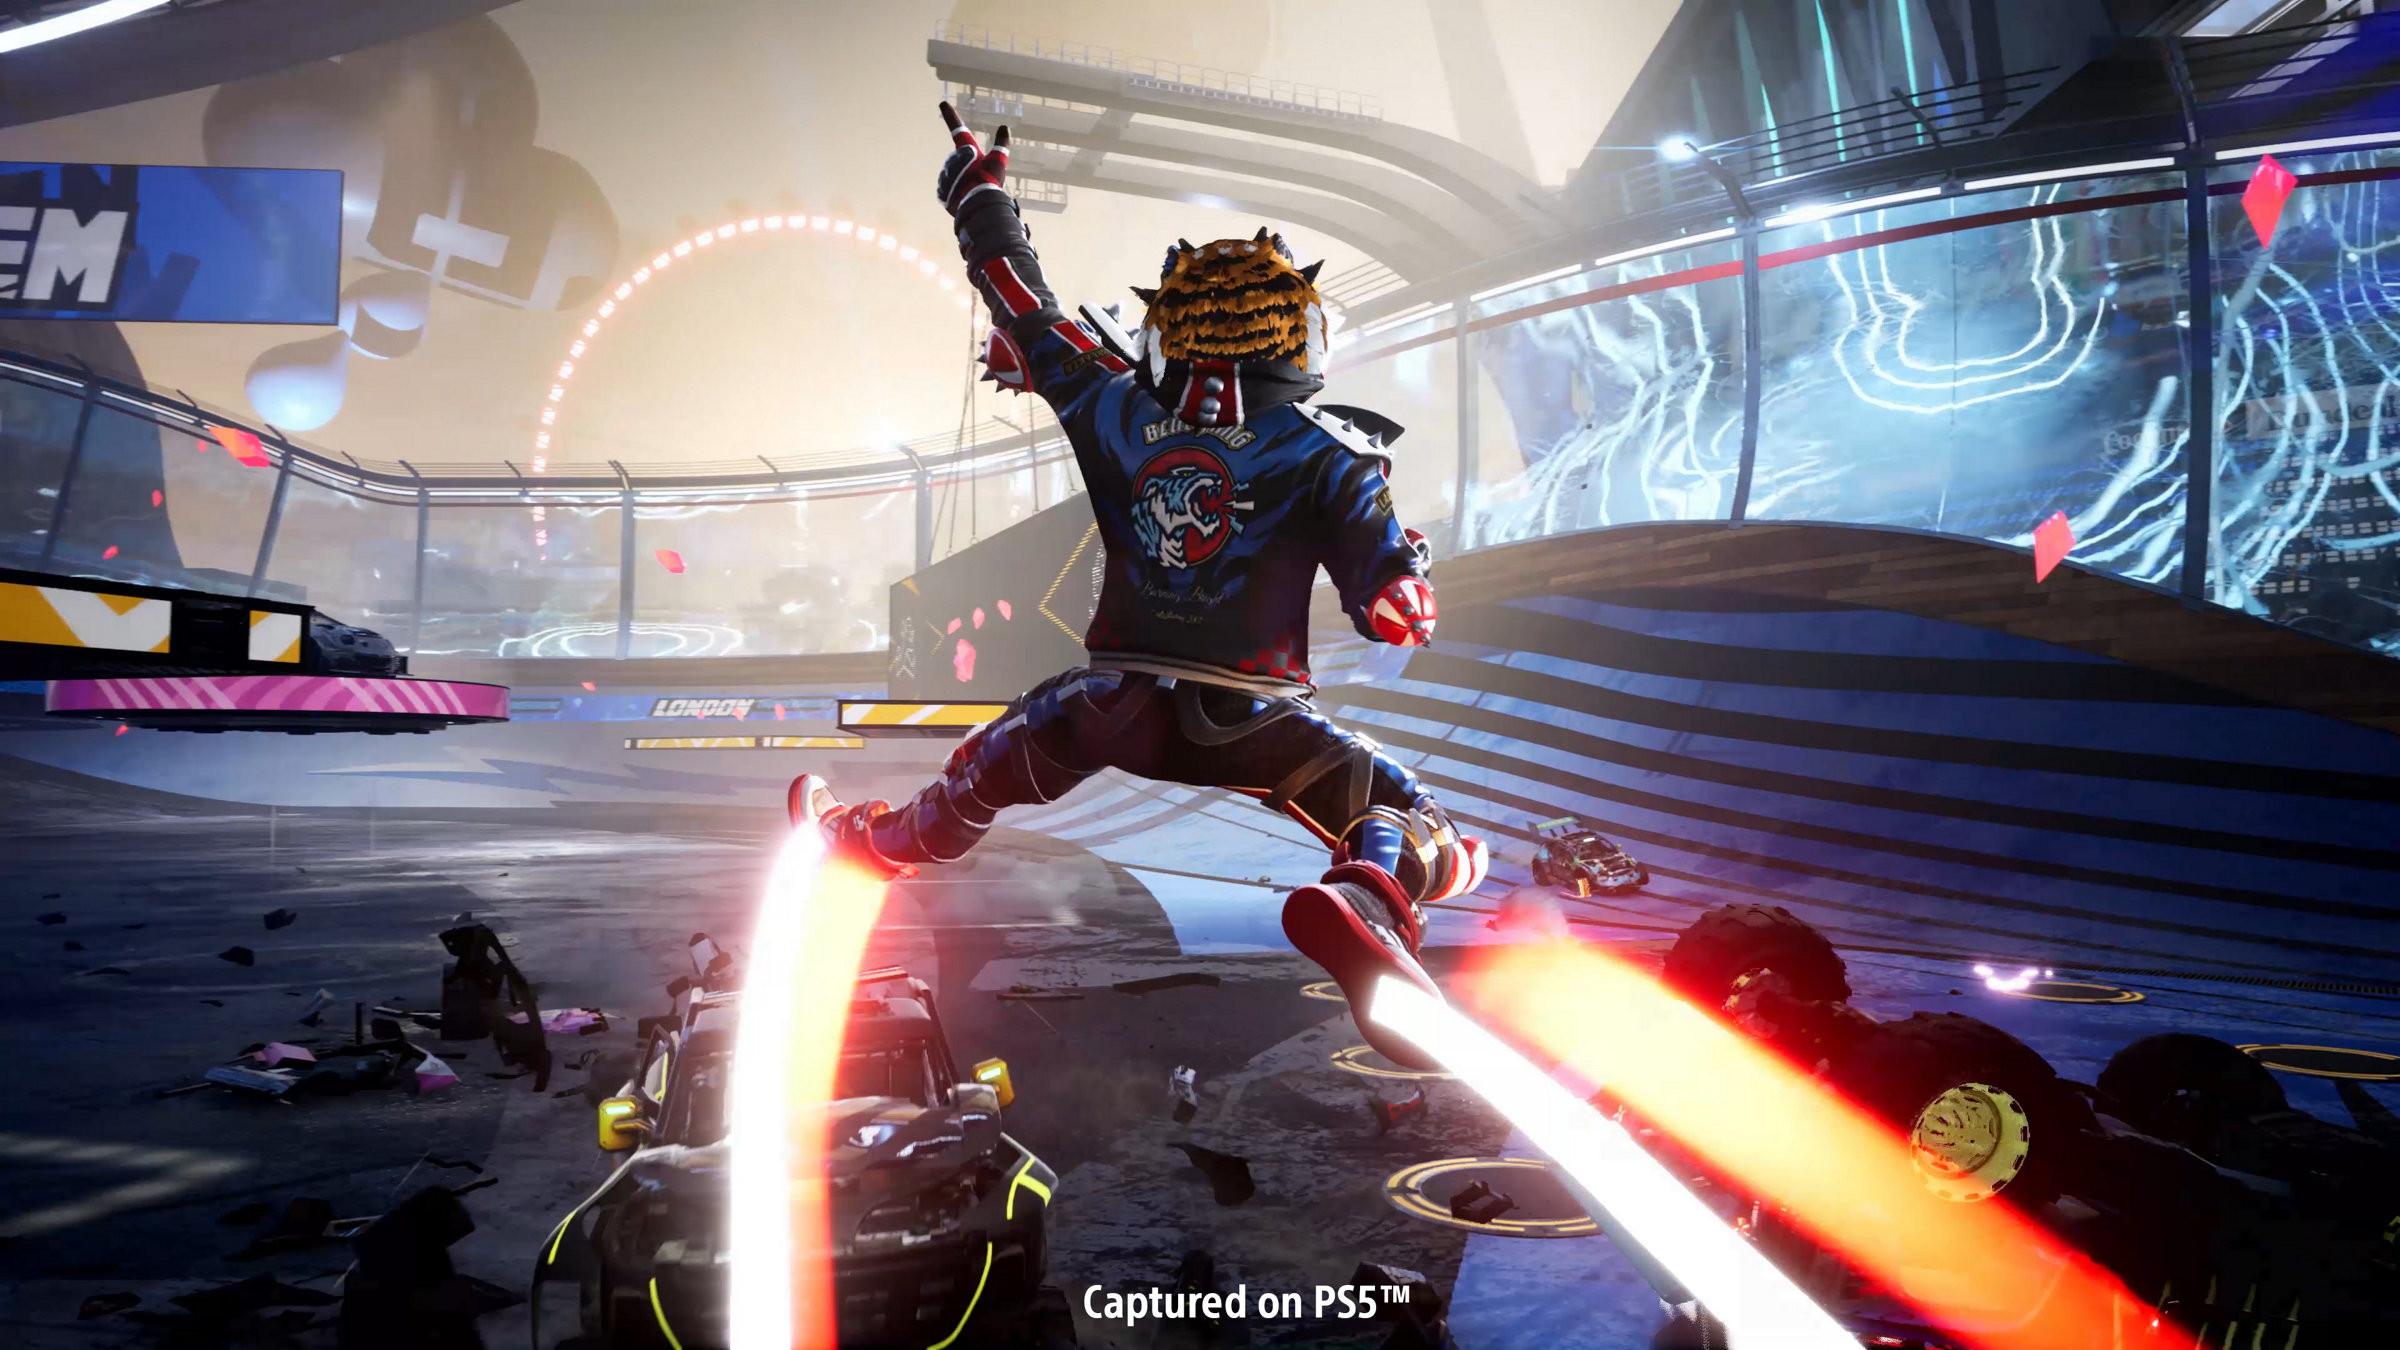 The PS5 offers many exclusive games such as Destruction All-Stars. The game promises to be action-packed.